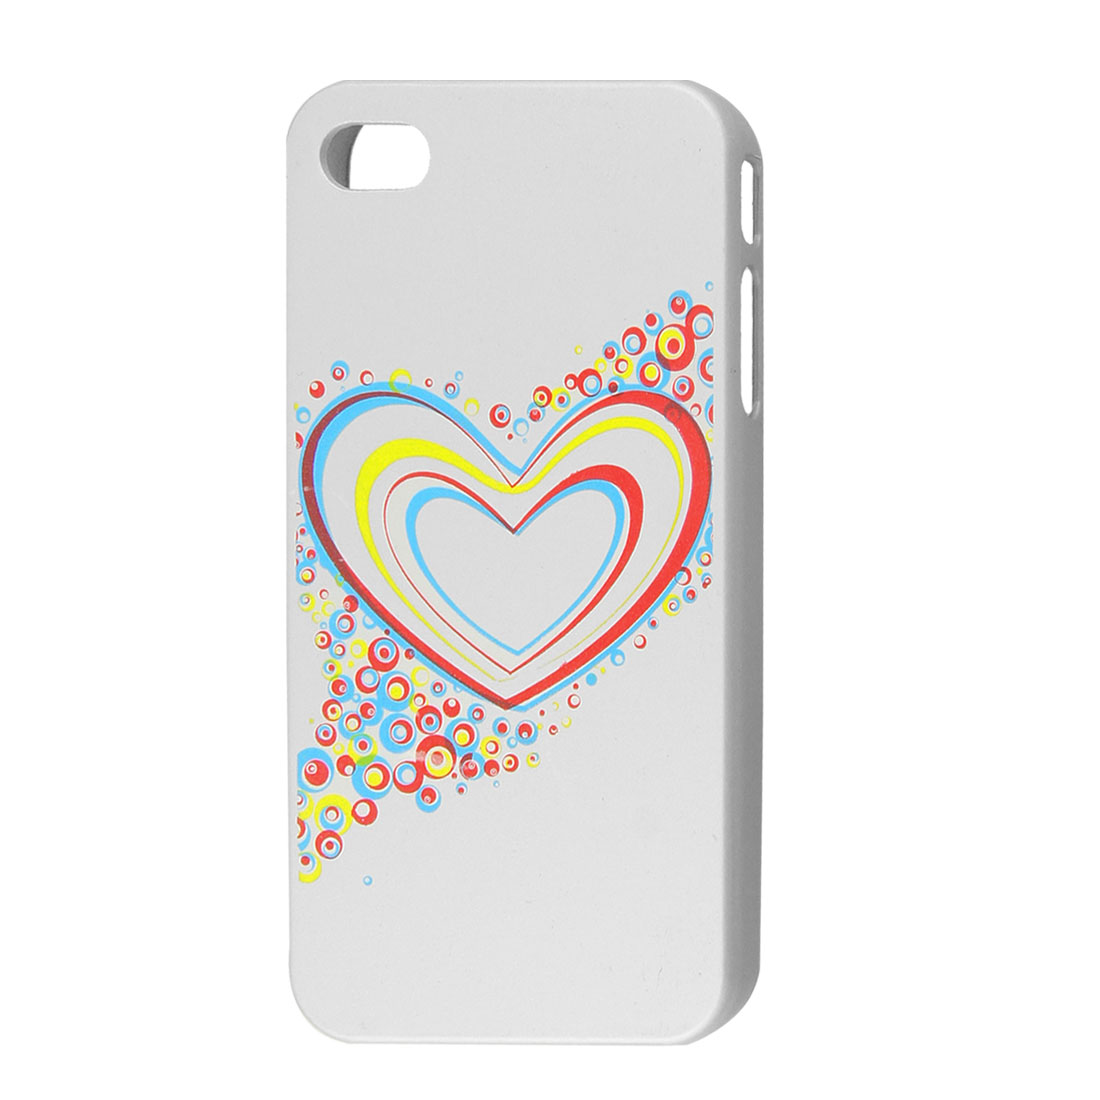 Colorful Heart Pattern Silver Tone Hard Plastic Back Case for iPhone 4 4G 4GS